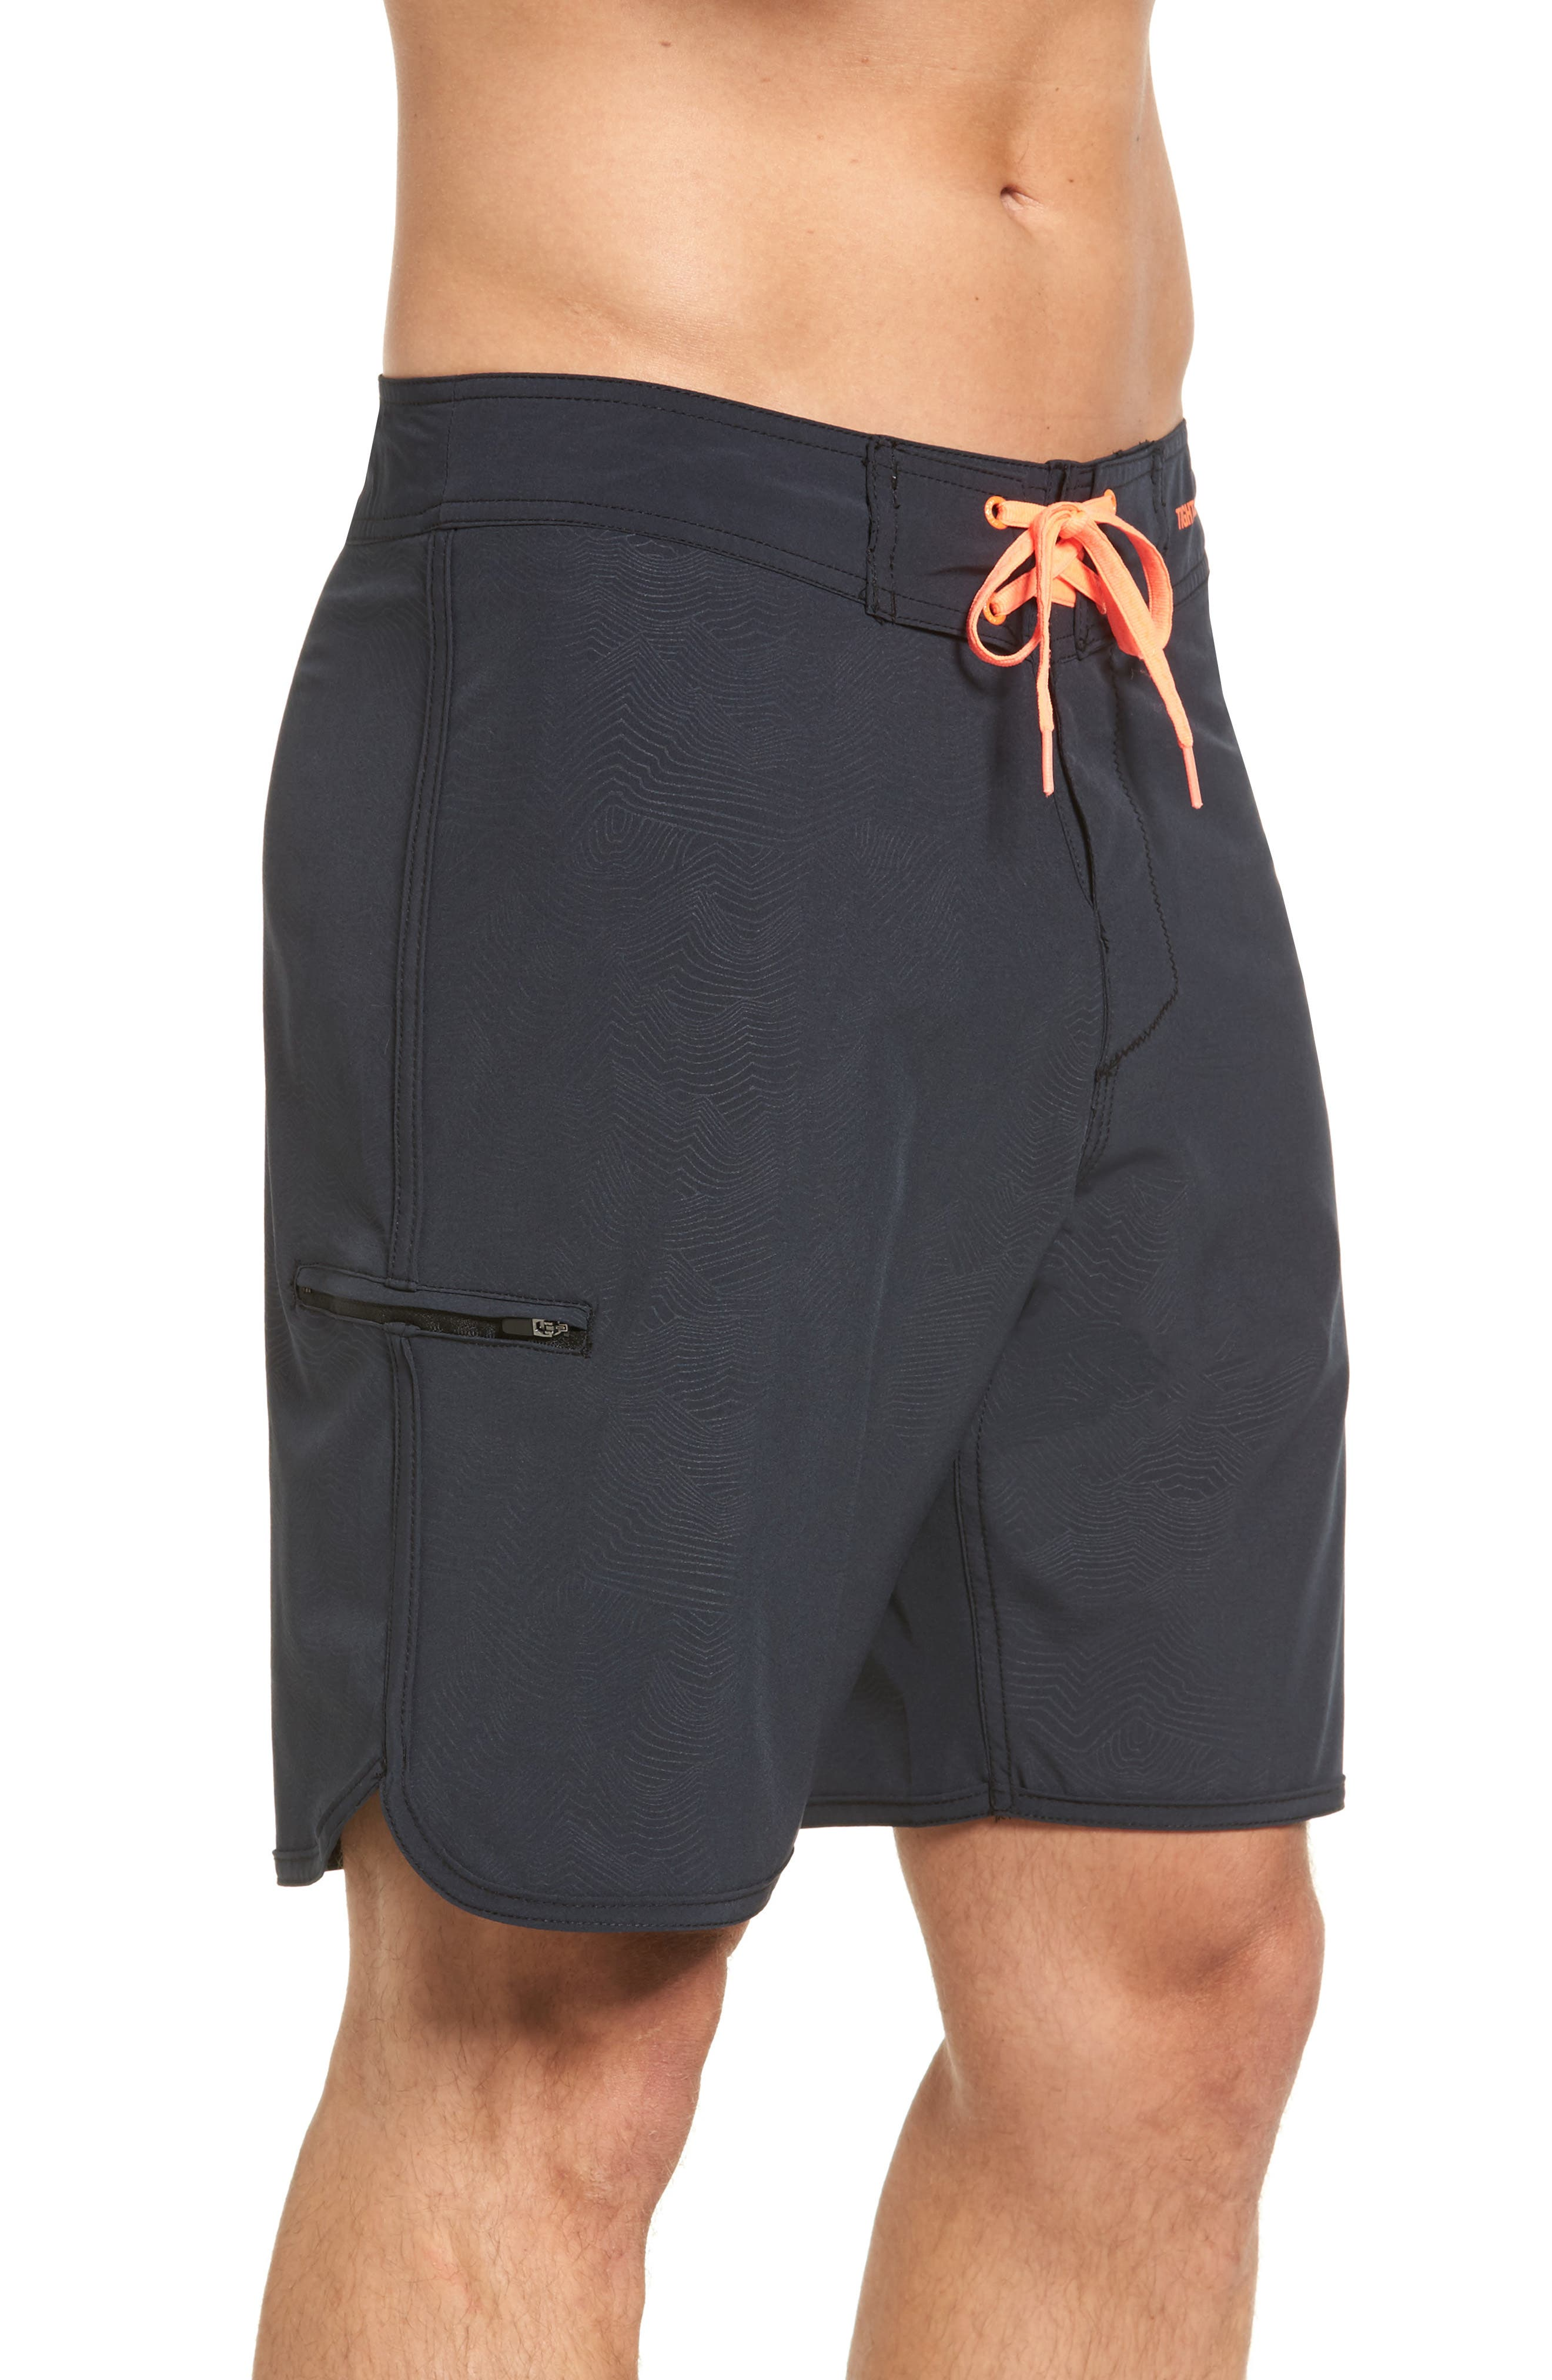 Elevation Board Shorts,                             Alternate thumbnail 3, color,                             001